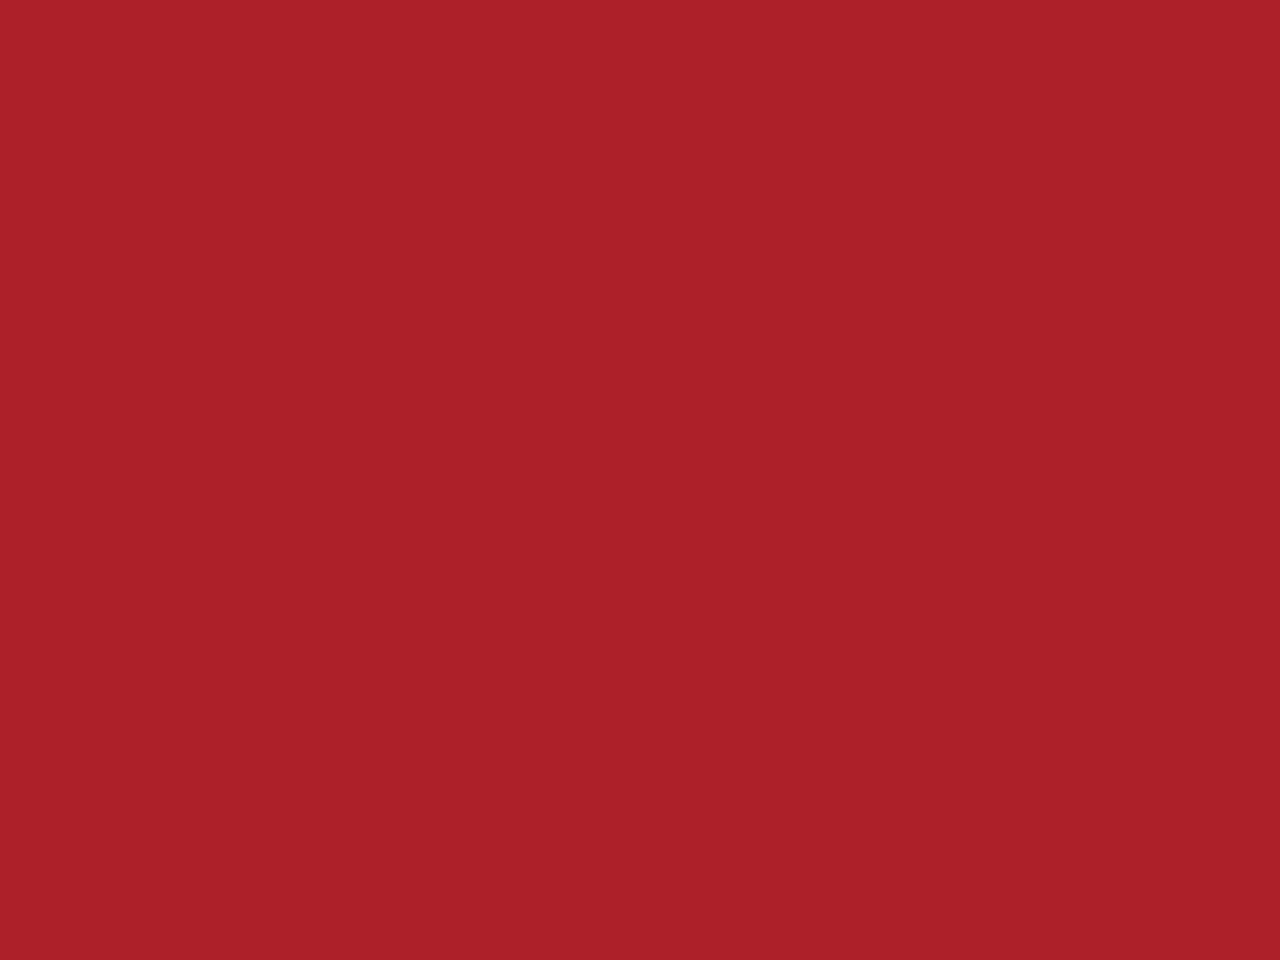 1280x960 Upsdell Red Solid Color Background